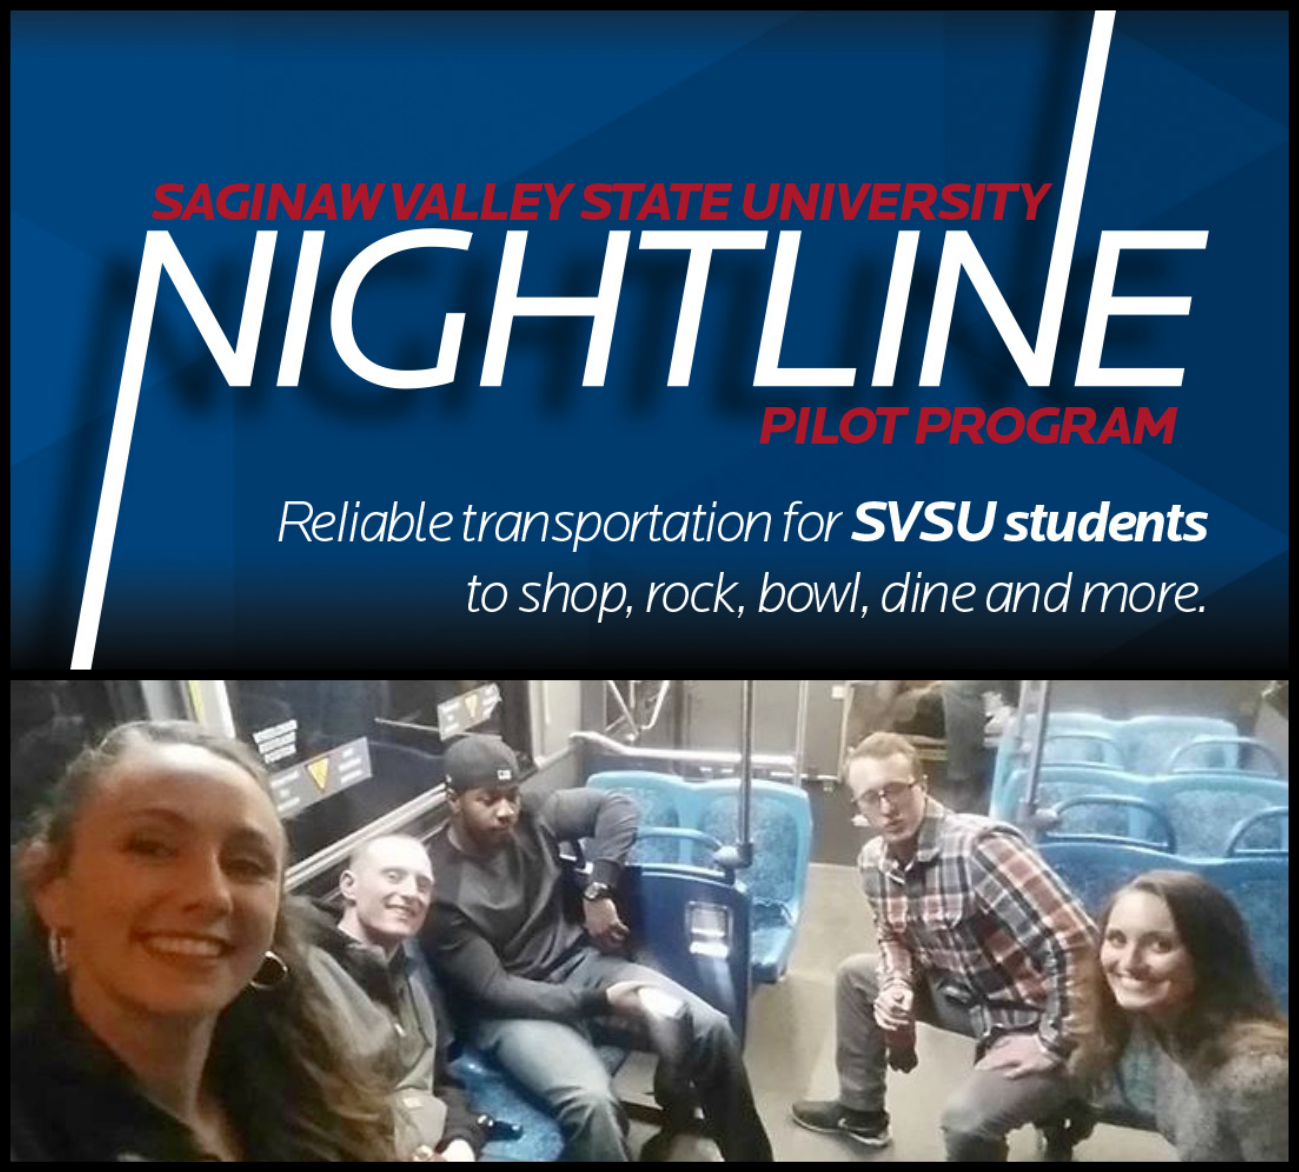 """Nightline"" — a late-night bus route from SVSU to Old Town Saginaw"